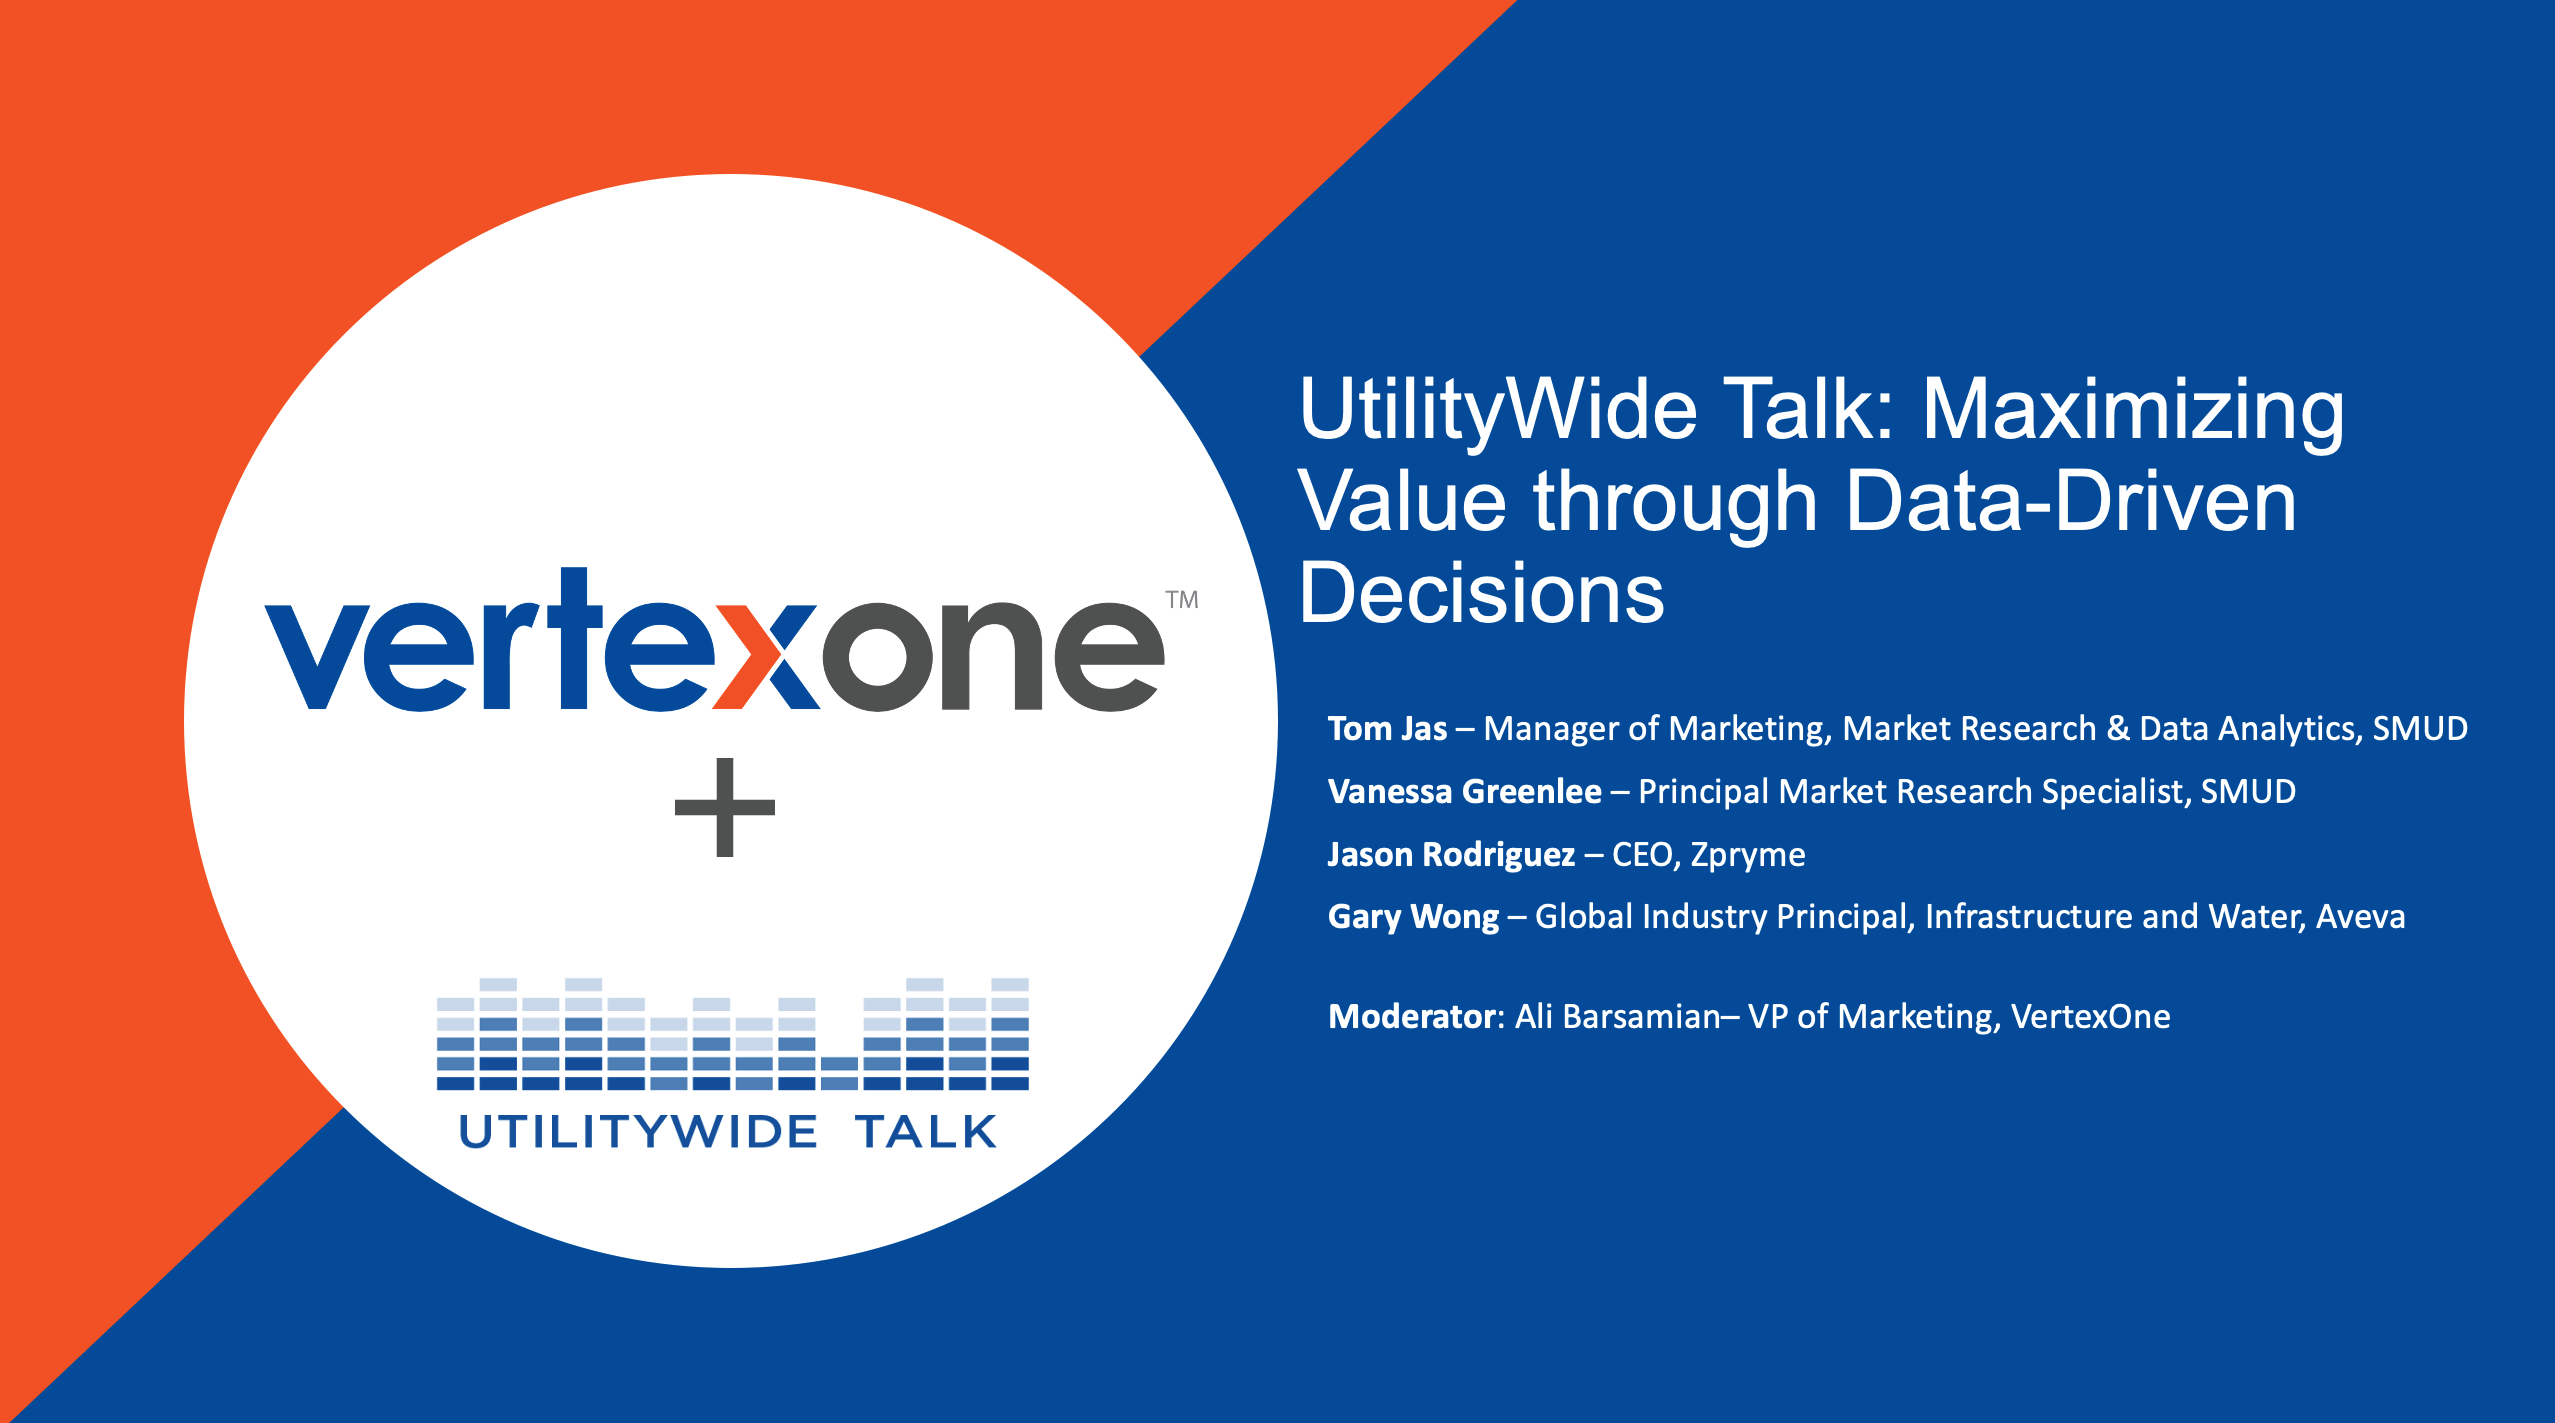 UtilityWide Talk: Maximizing Value through Data-Driven Decisions 9.22.2021